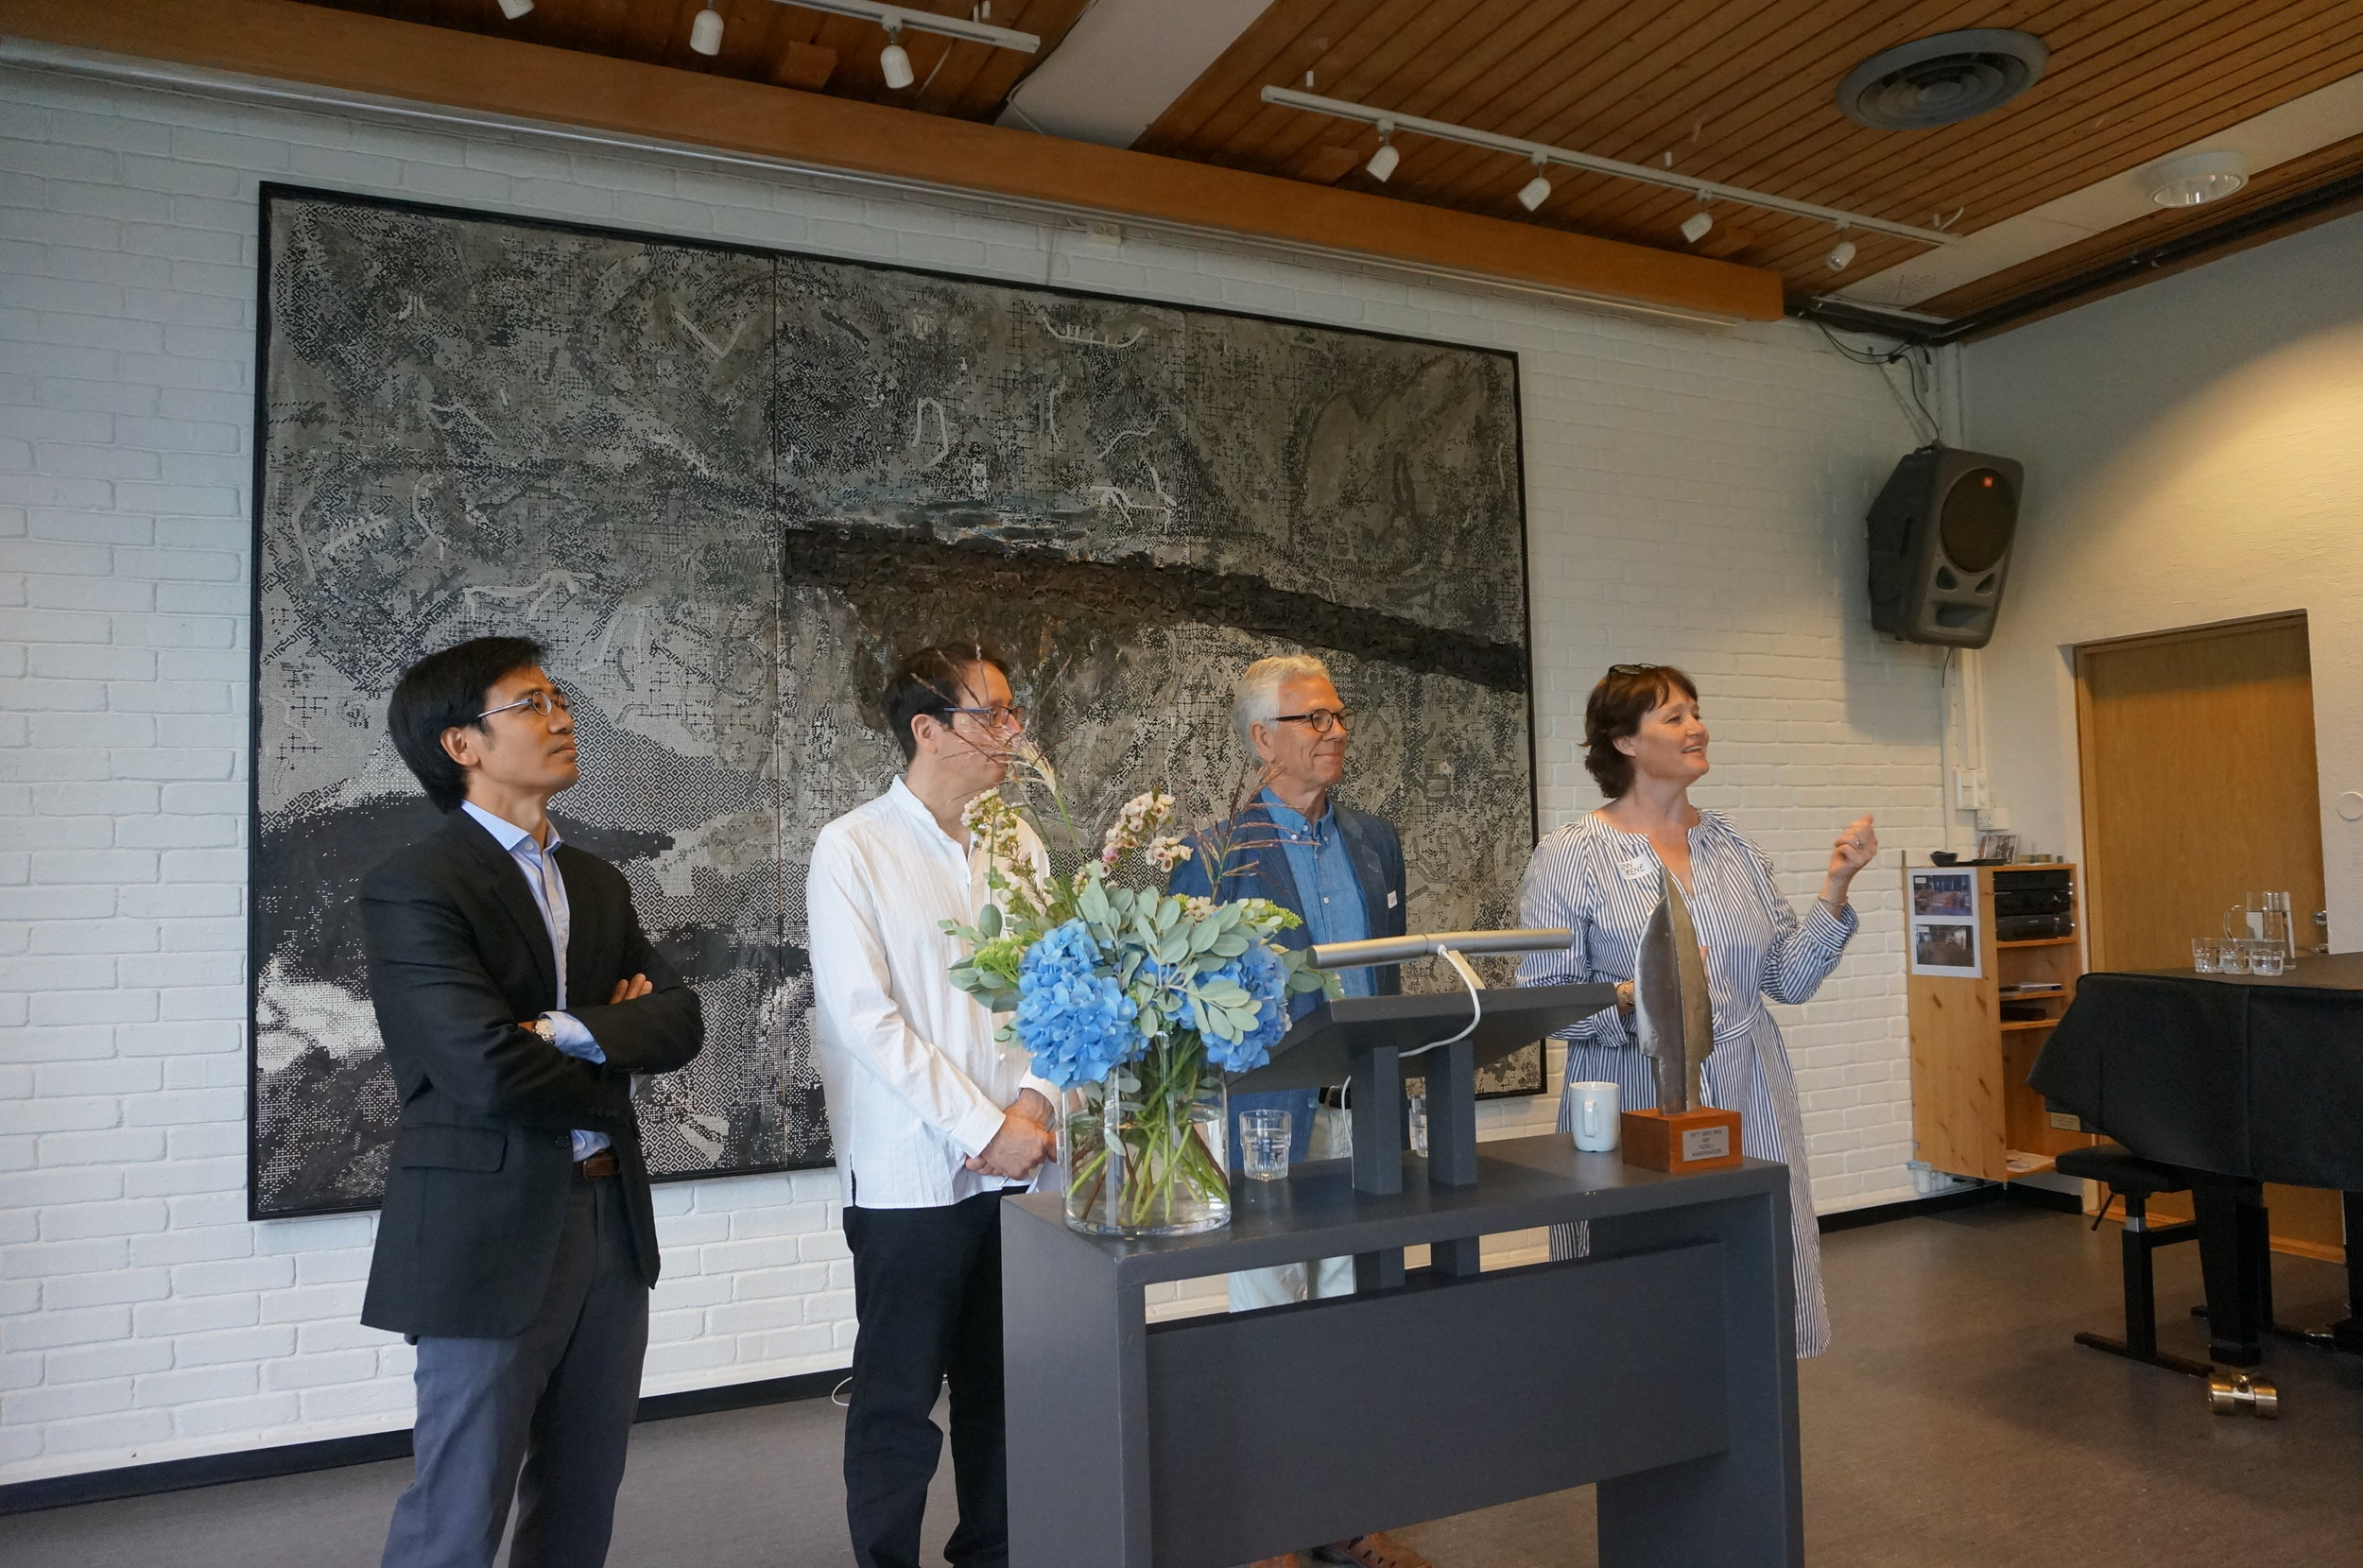 The organizers (Chunrong Liu, Daniel Bell, Geir Helgesen, and Unn Irene Aasdalen) welcoming students the first day of lectures